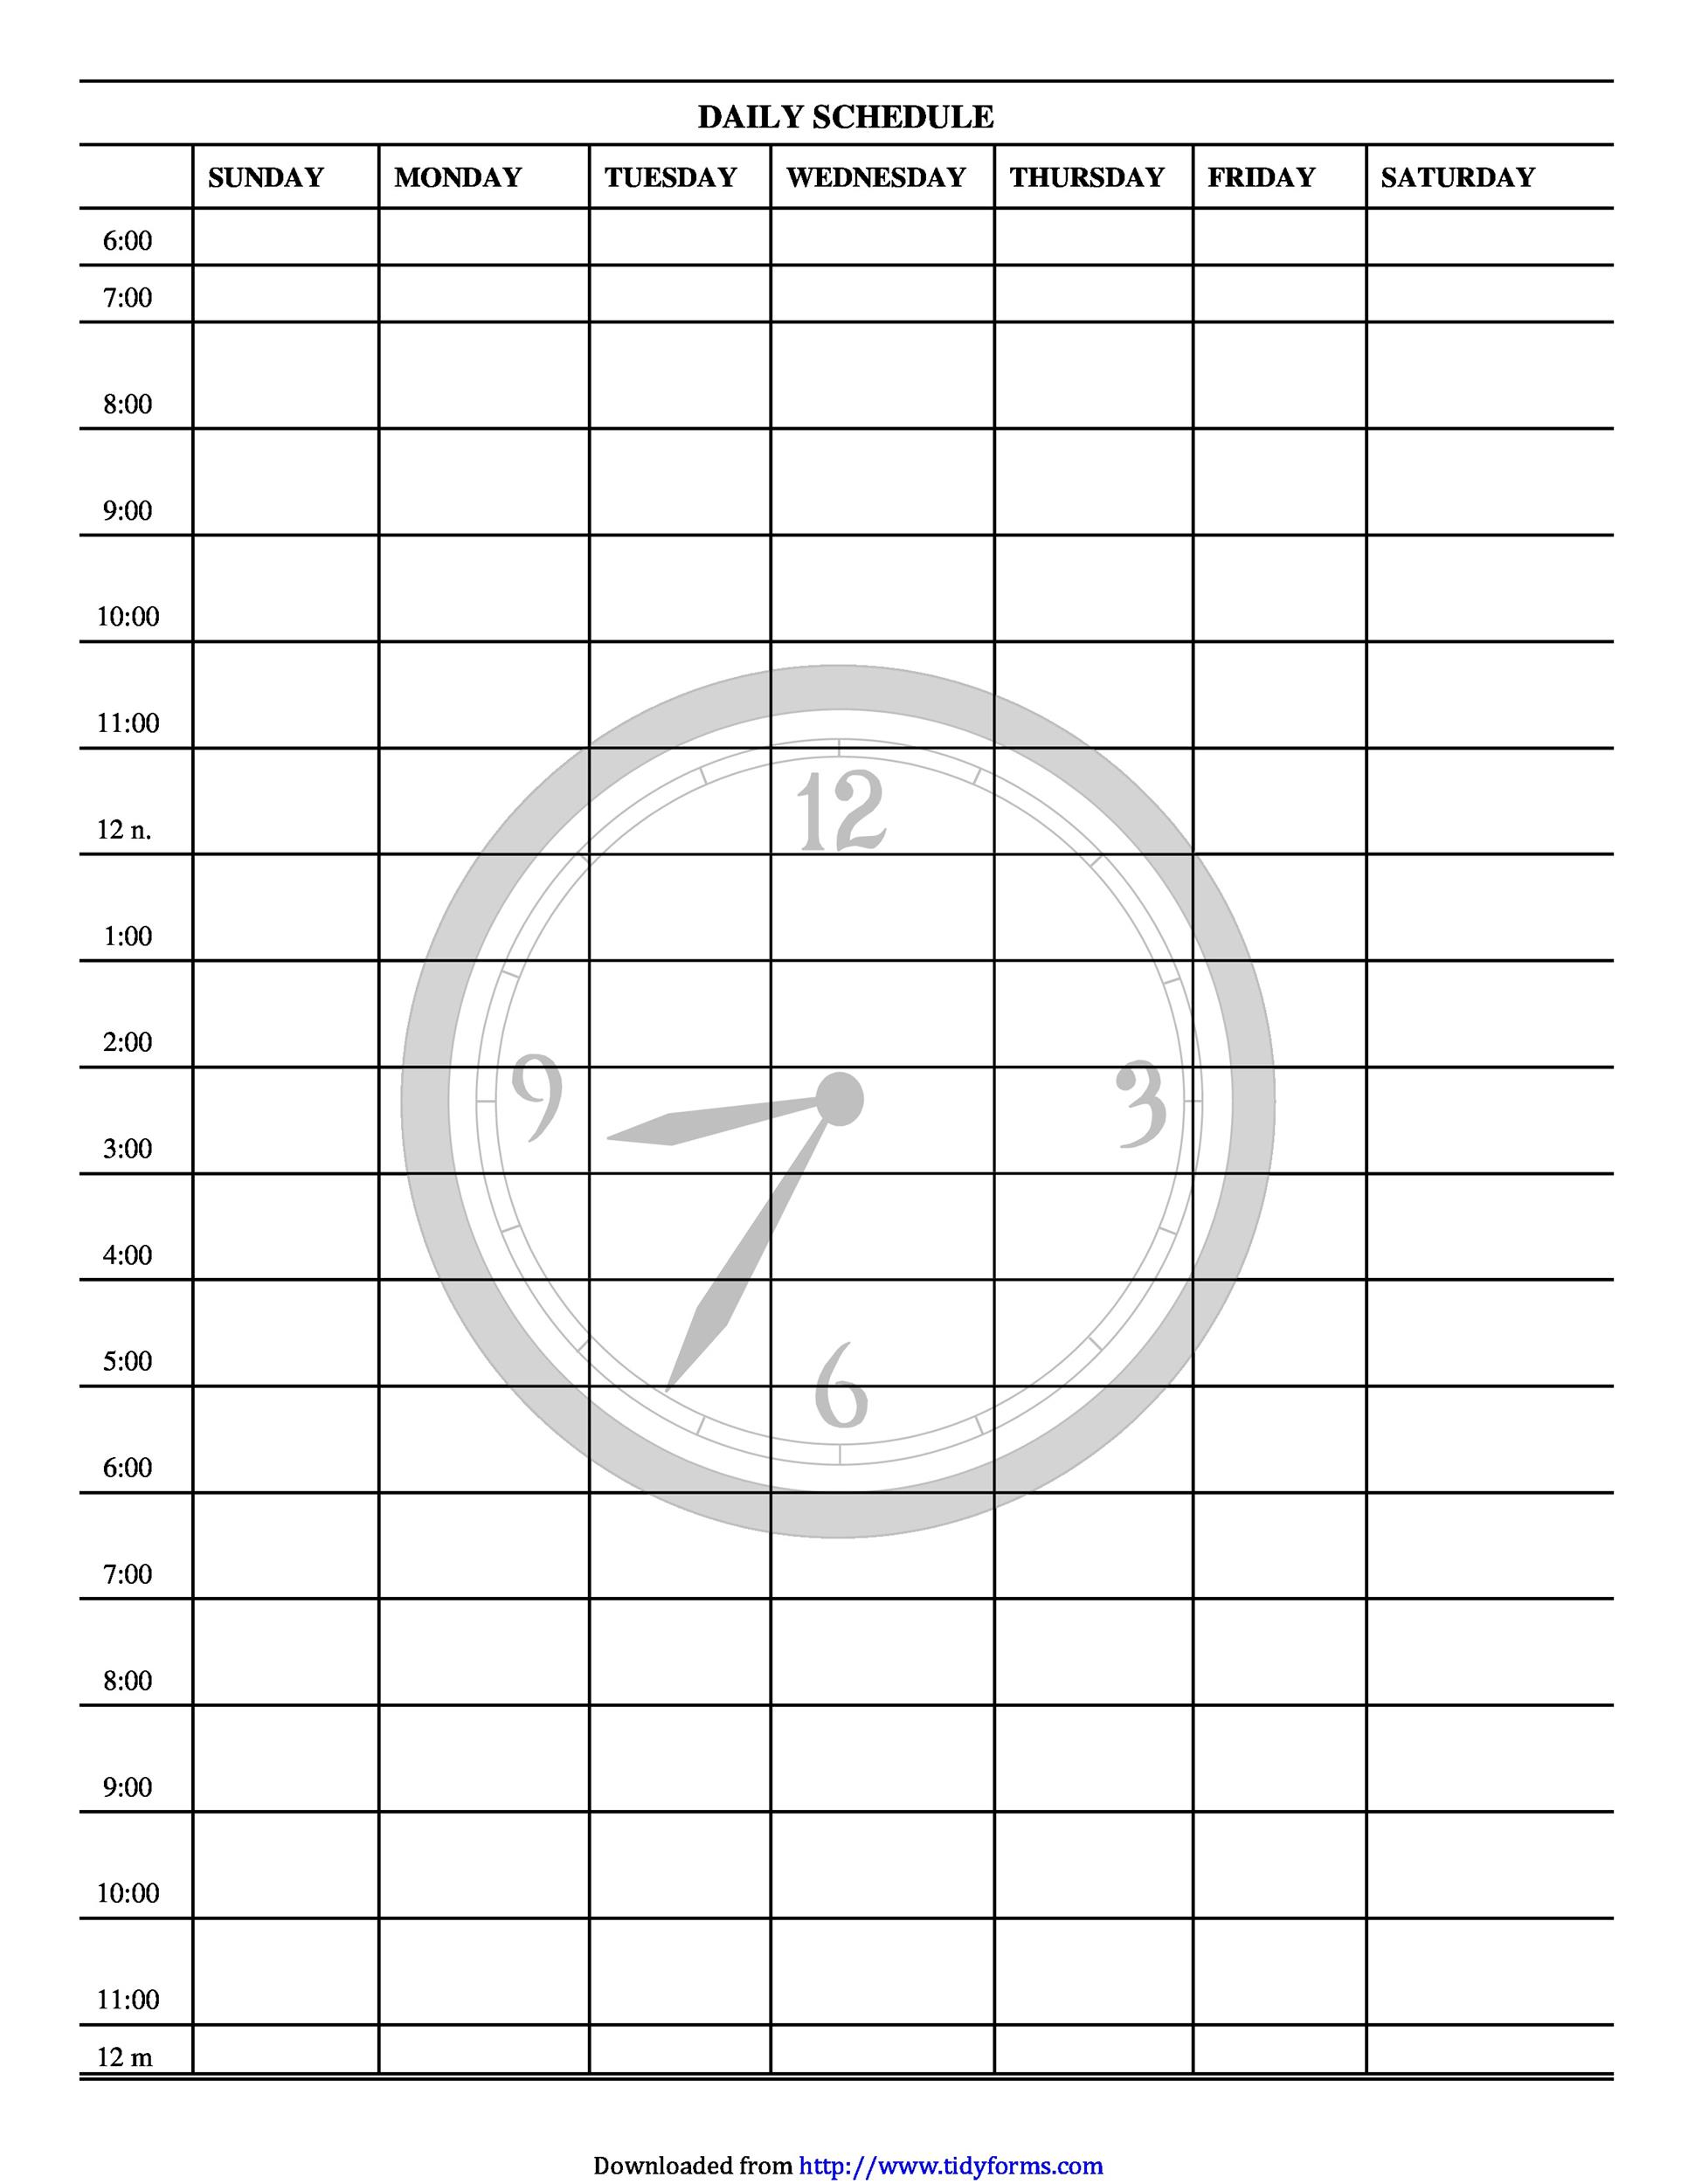 47 Printable Daily Planner Templates (Free In Wordexcelpdf) pertaining to 24 Hour Daily Planner Printable